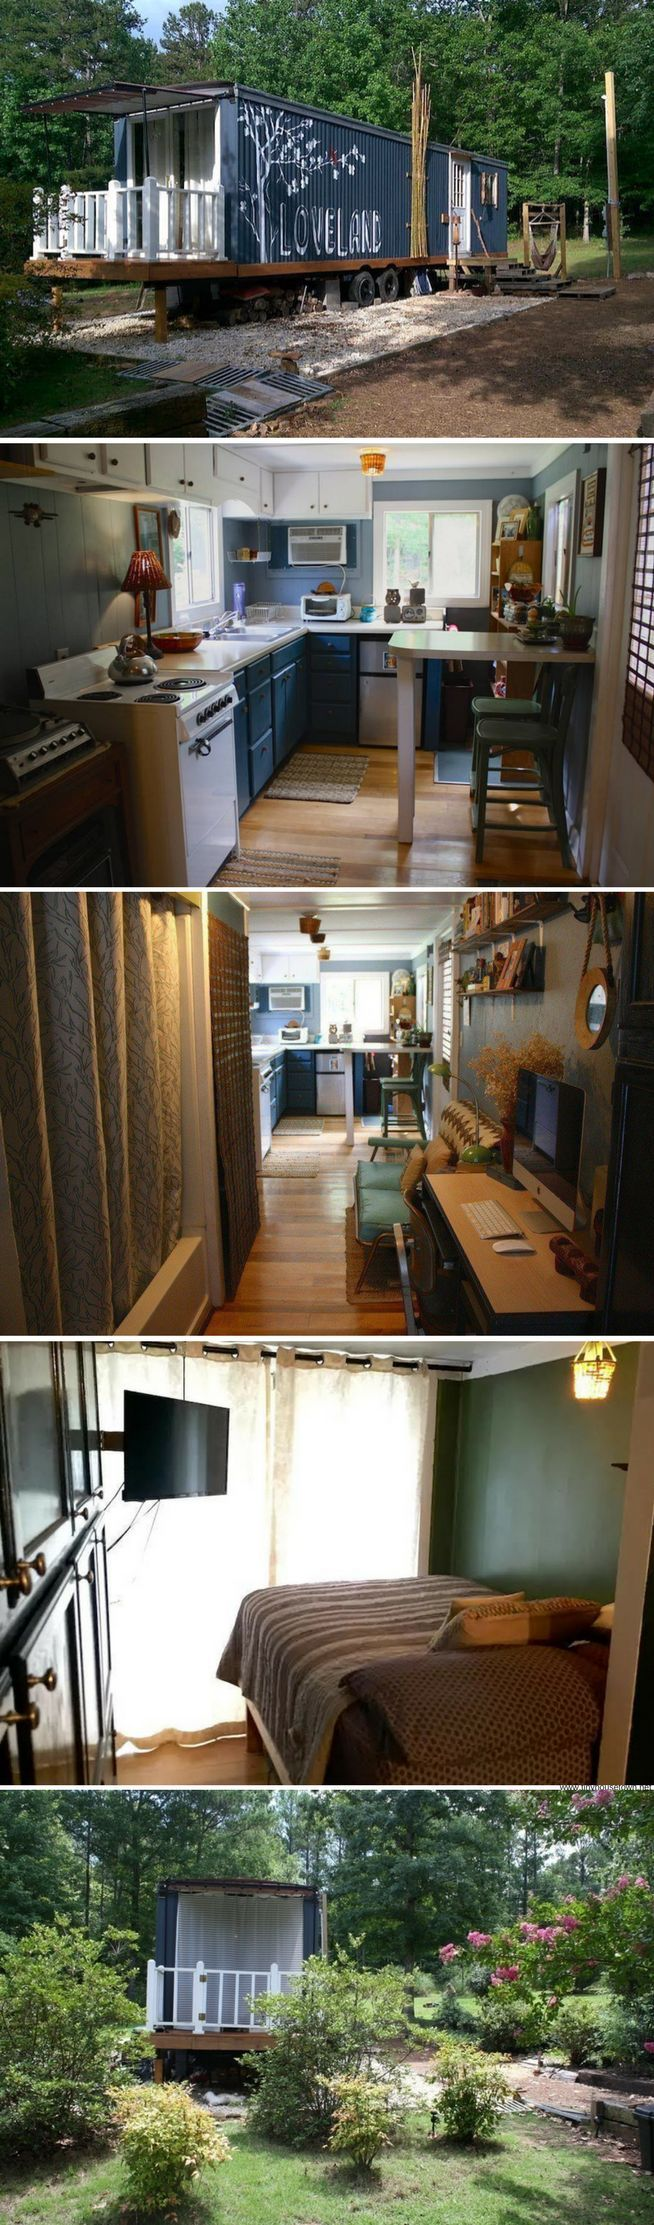 best small spaces images on pinterest small houses tiny